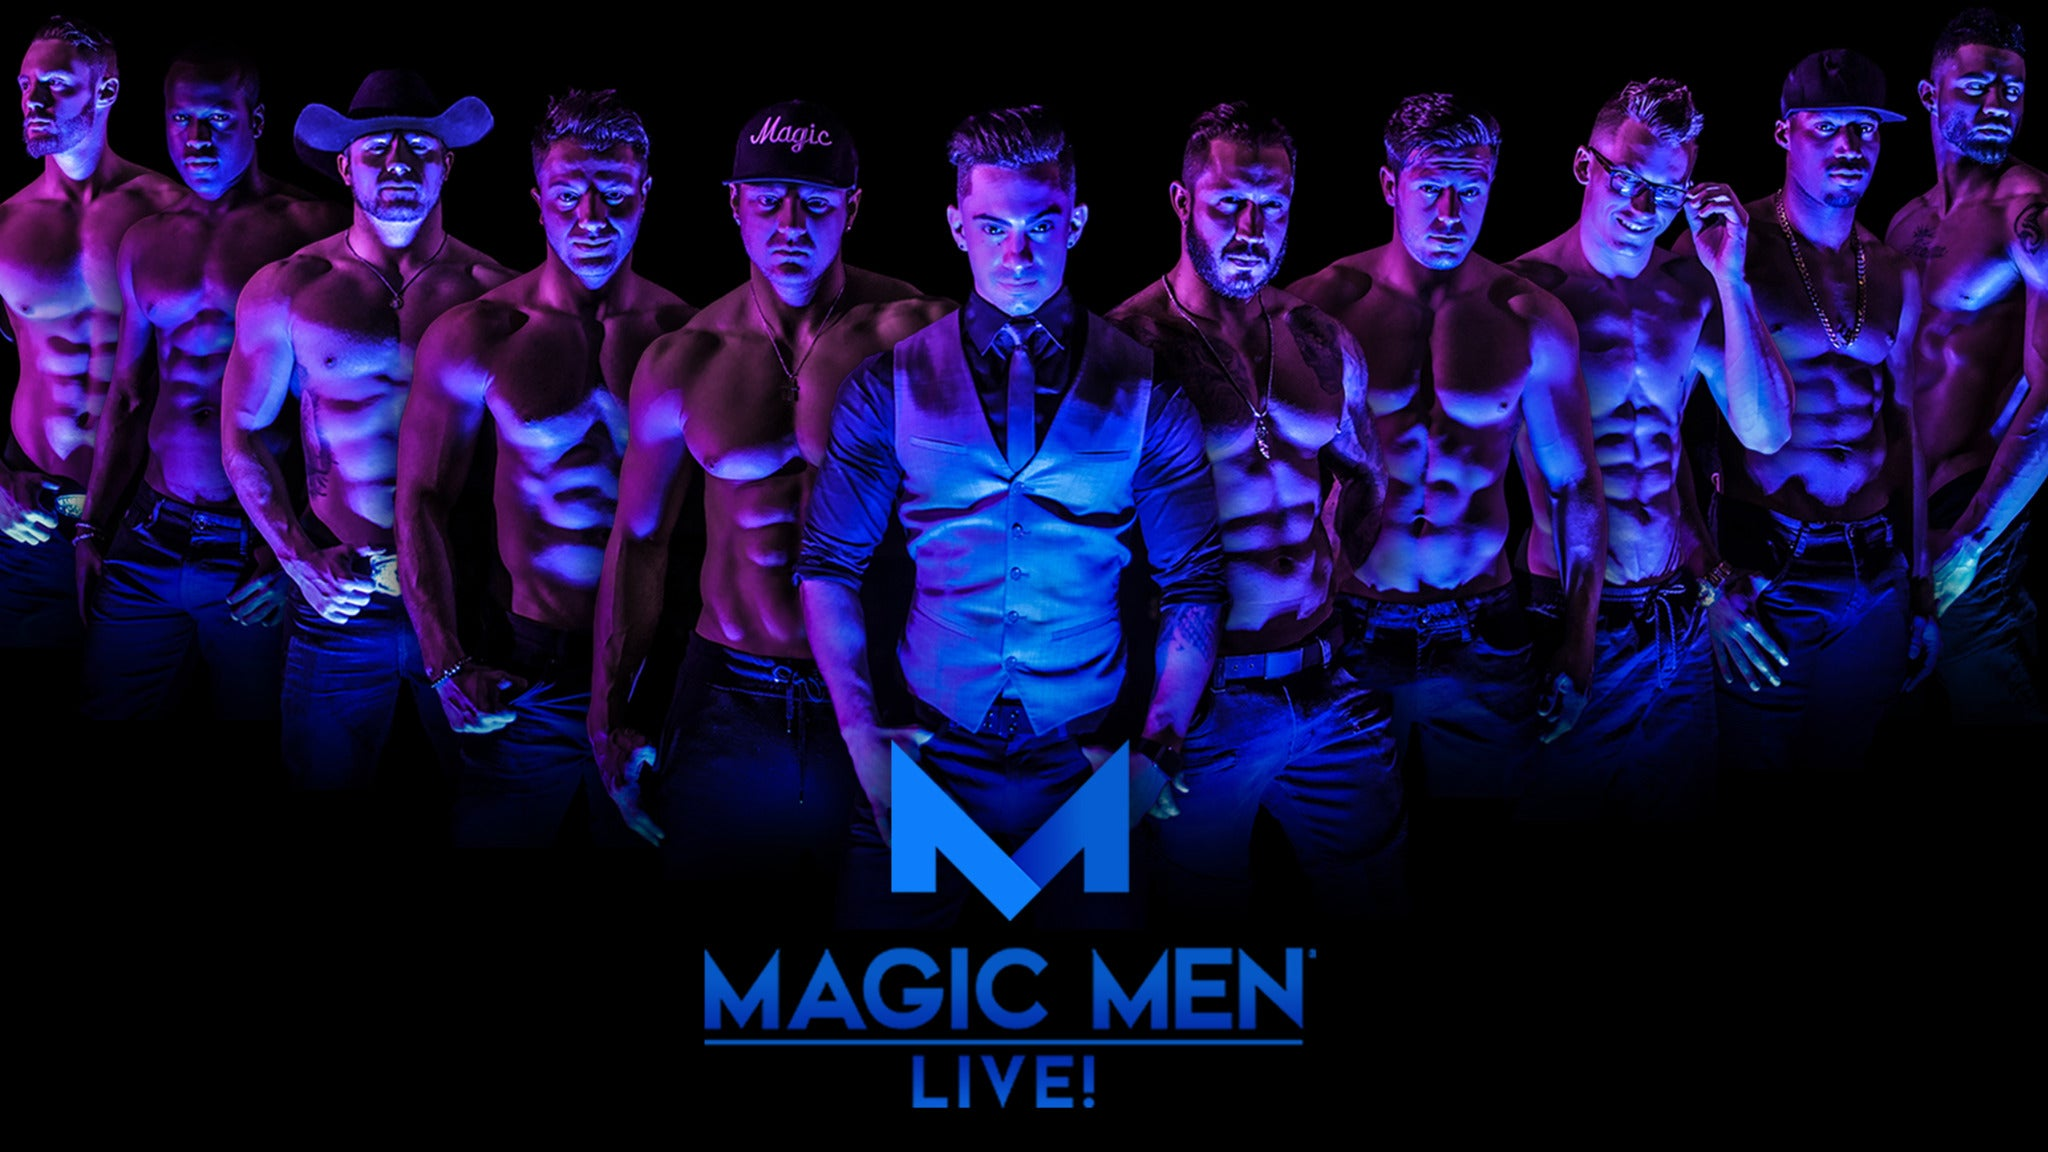 Magic Men LIVE! at House of Blues Myrtle Beach